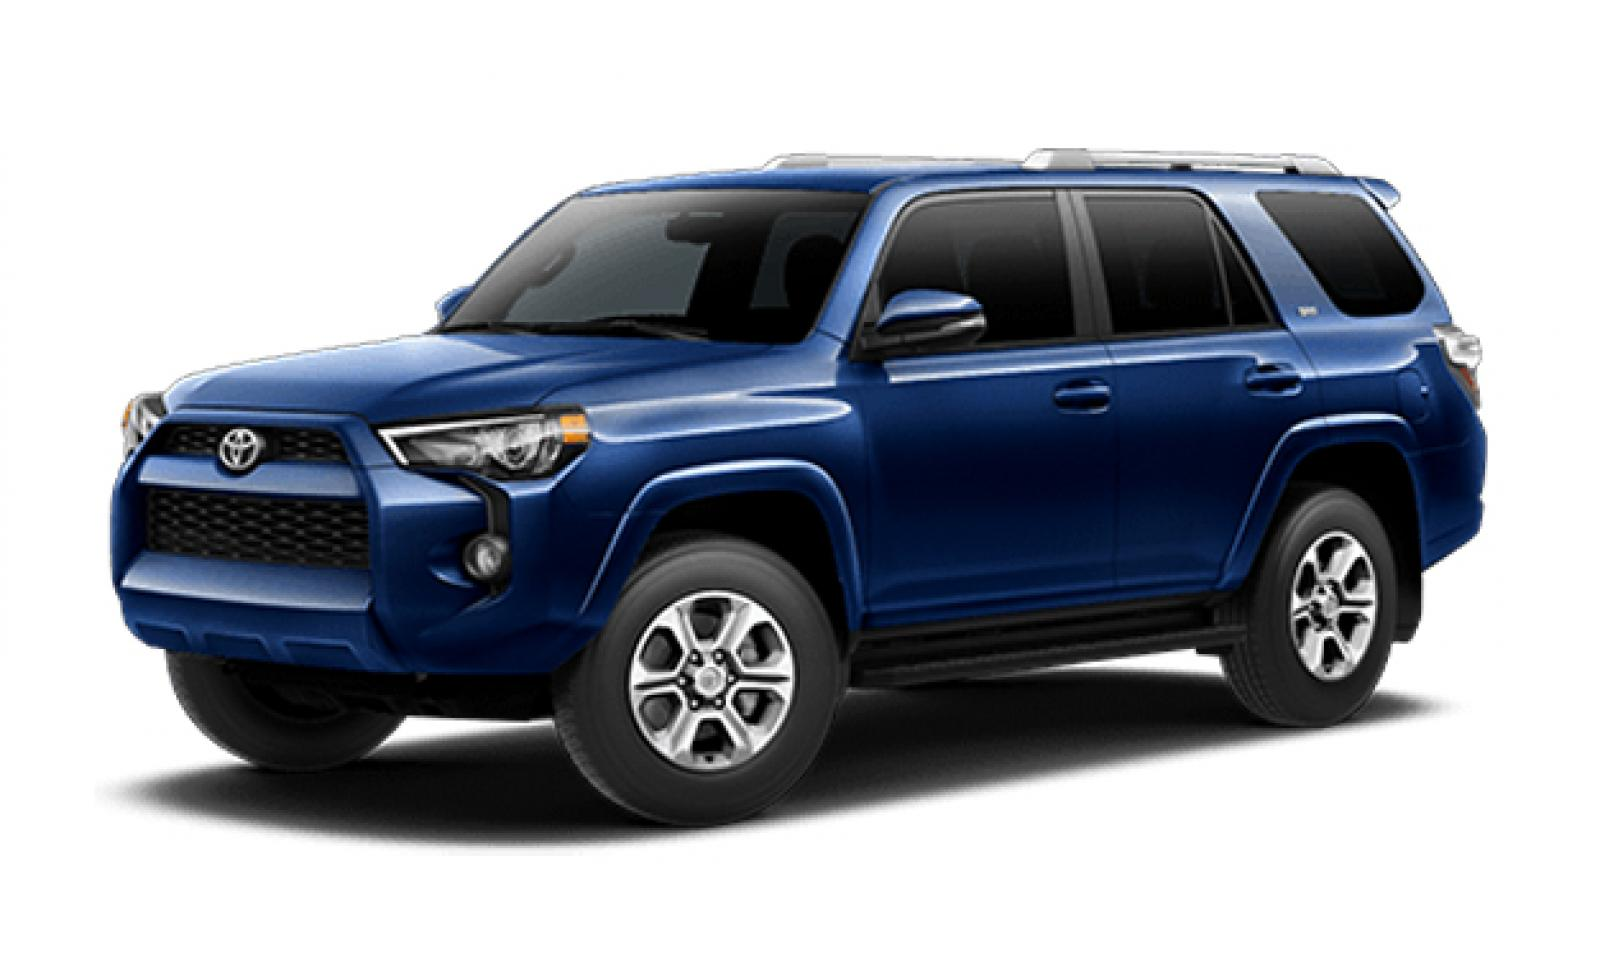 2015 toyota 4runner information and photos zombiedrive. Black Bedroom Furniture Sets. Home Design Ideas